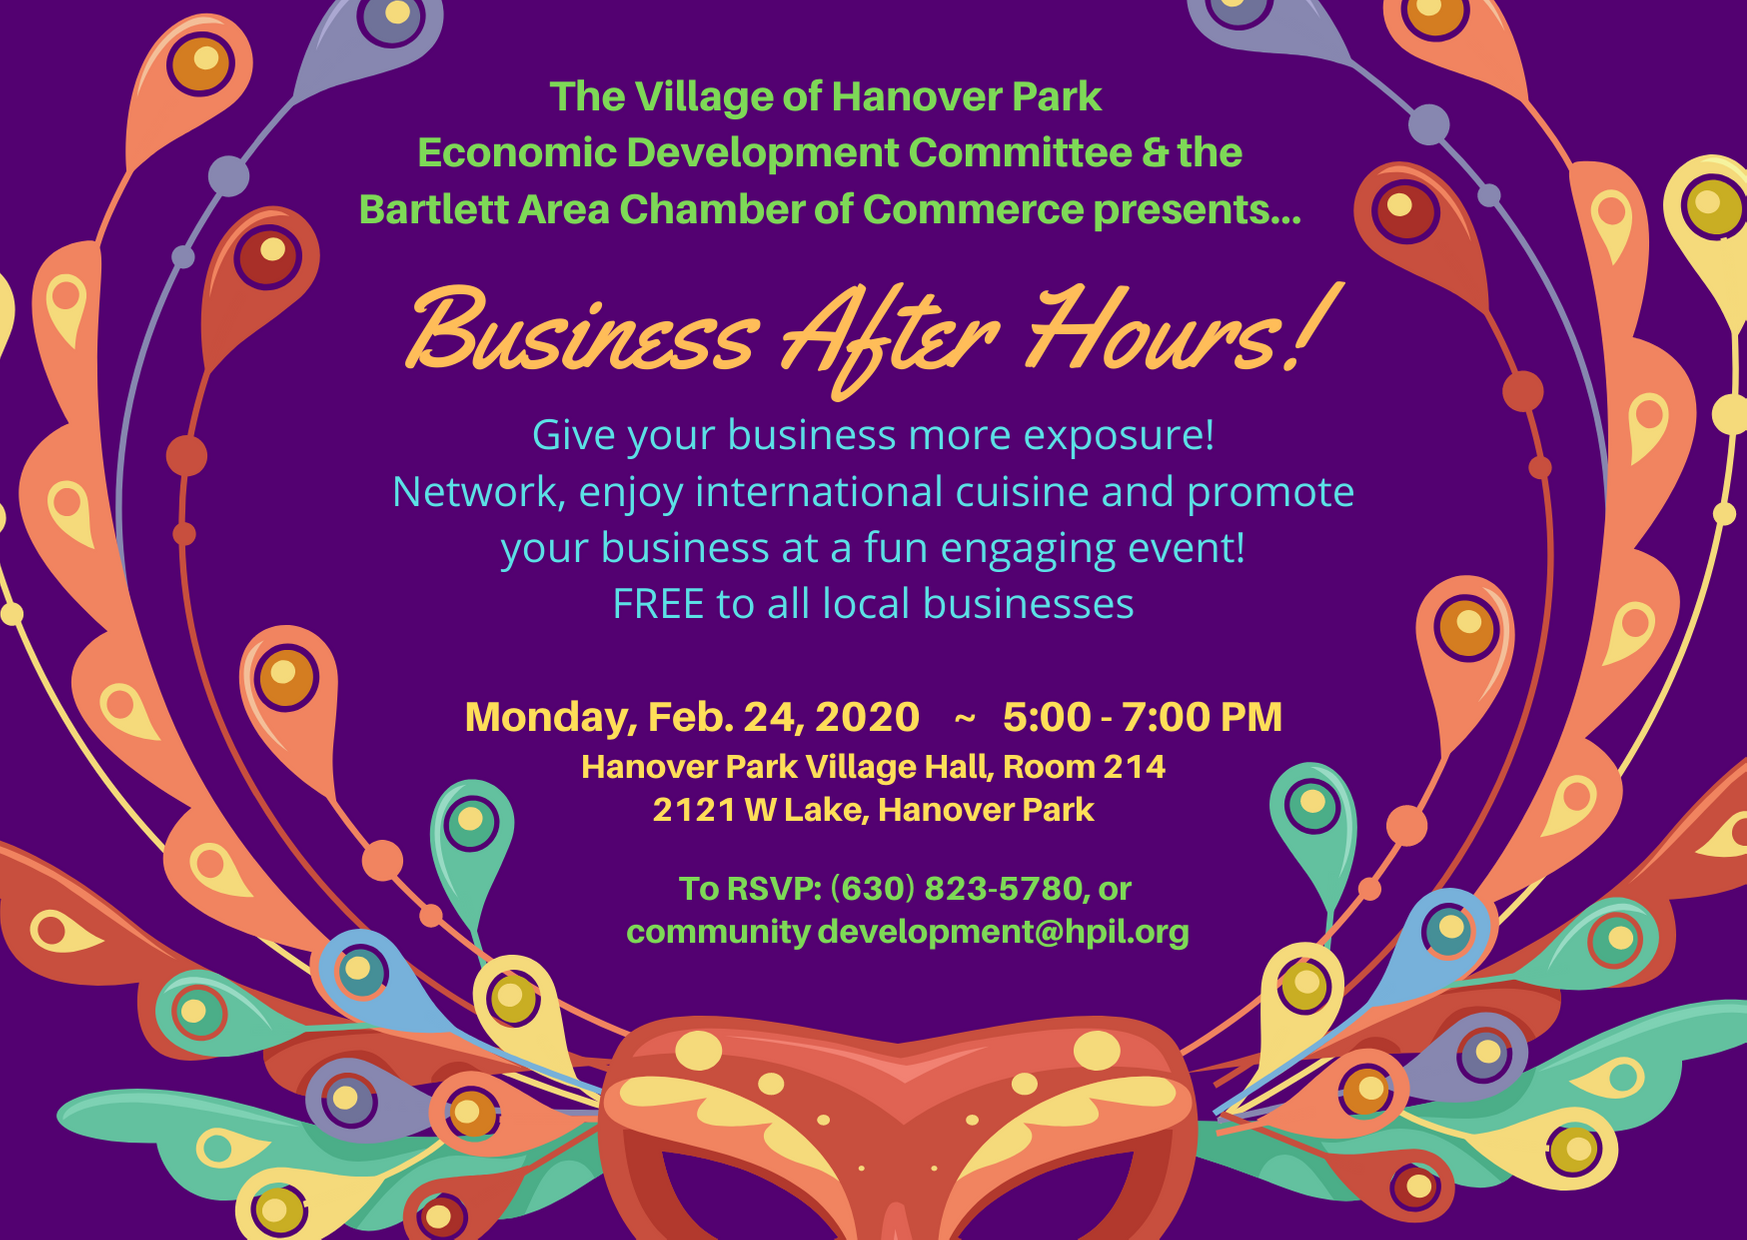 Business After Hours Invitation